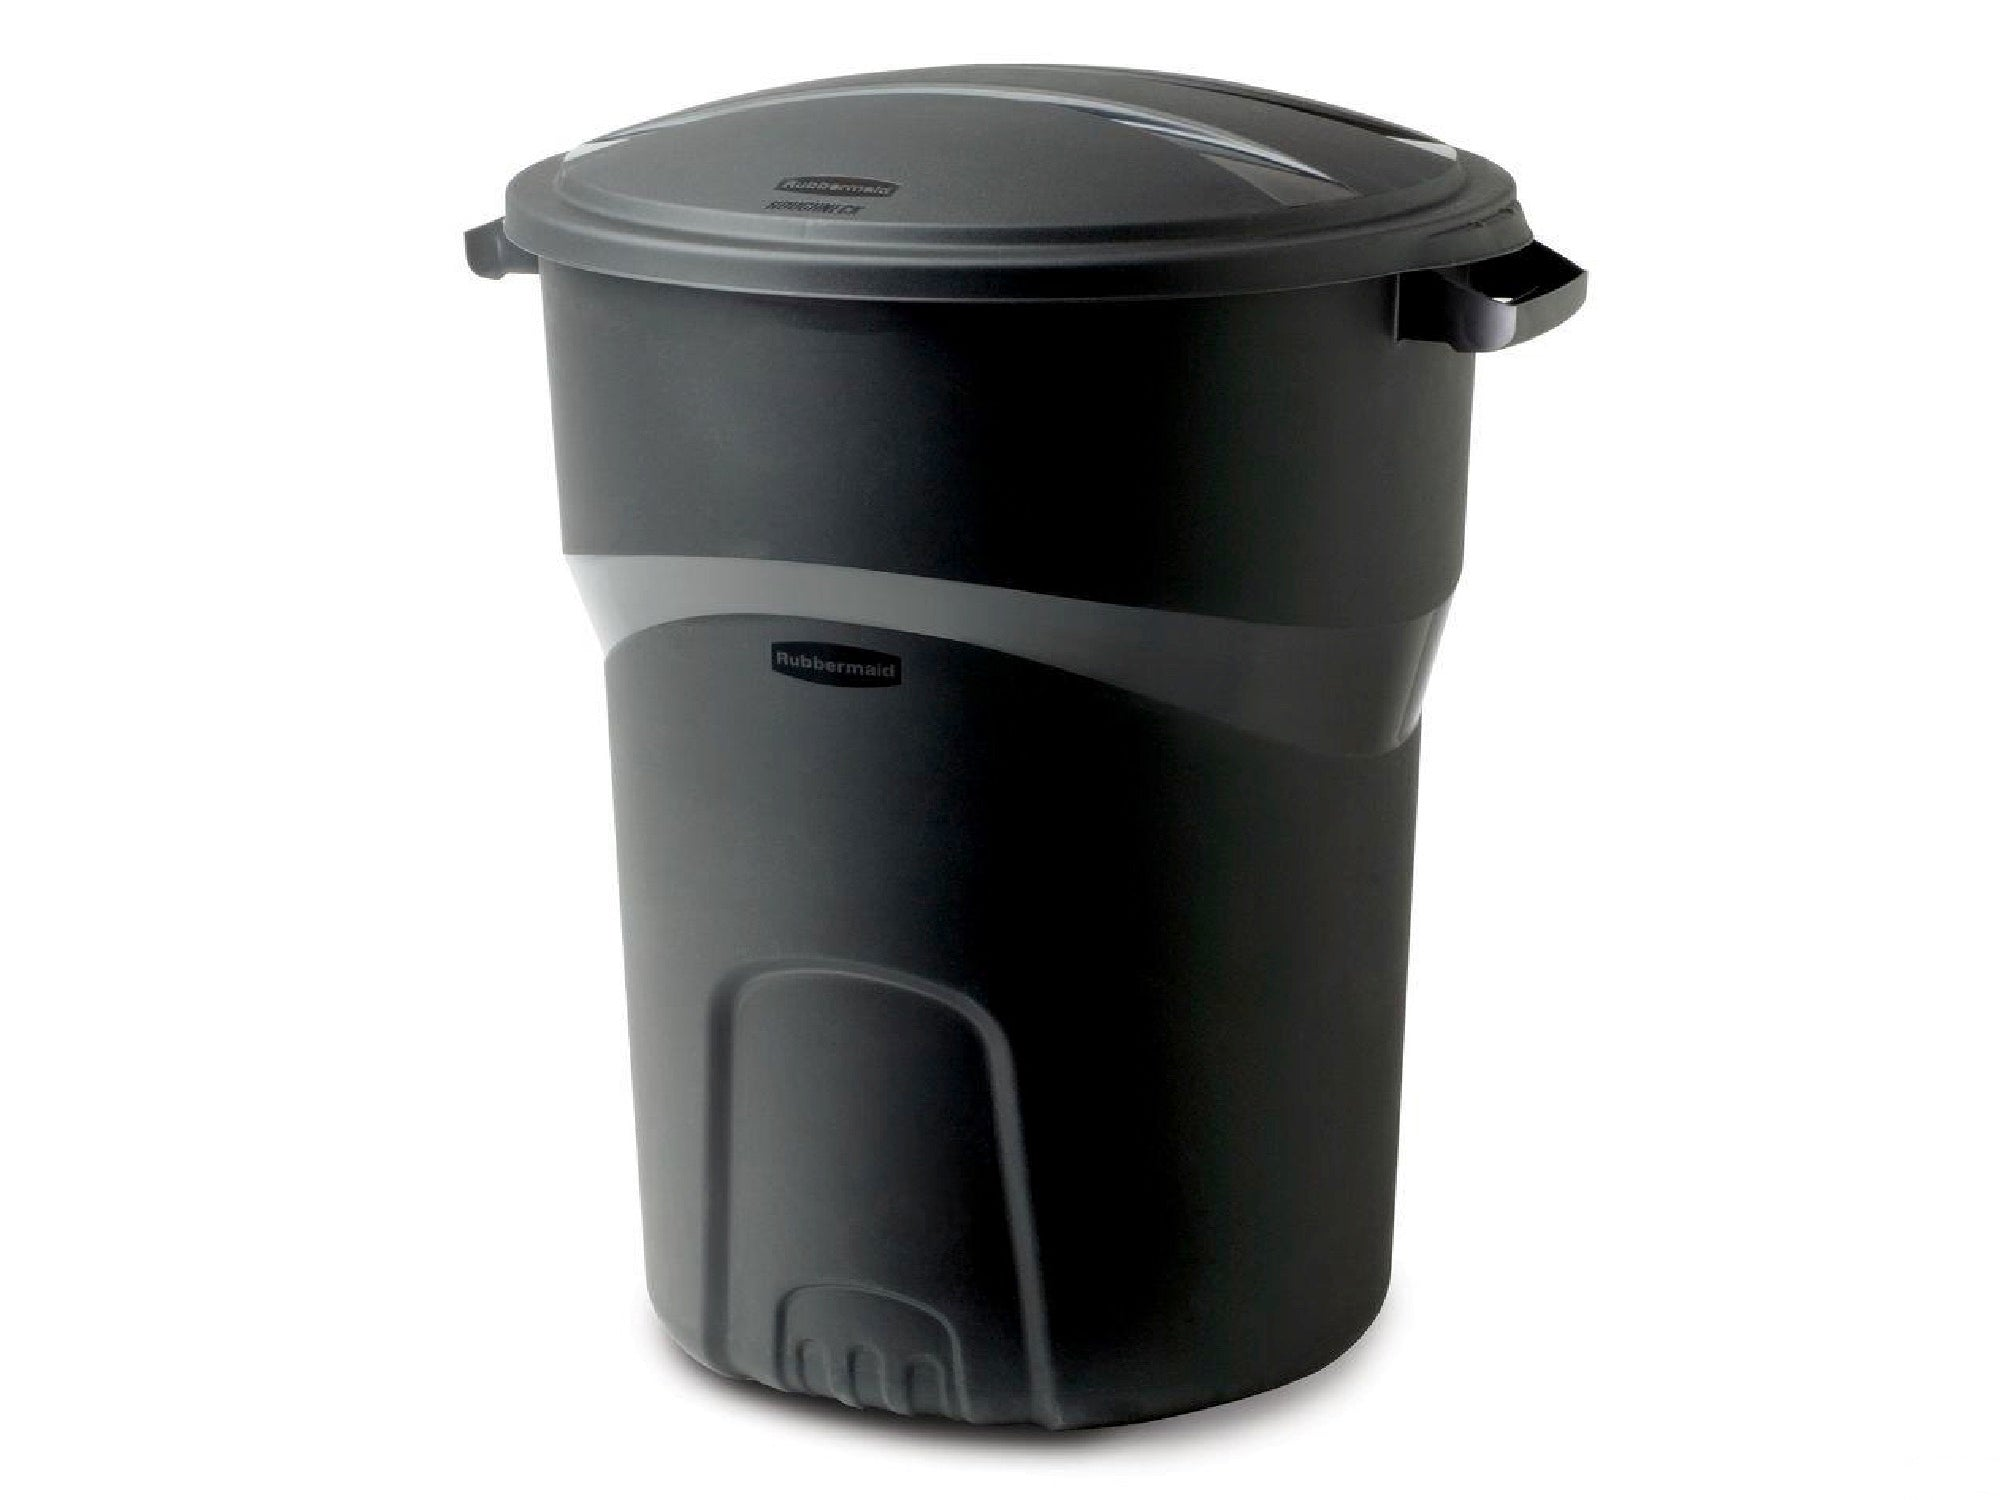 LARGE ROUND TRASH CAN | 32 GALLON